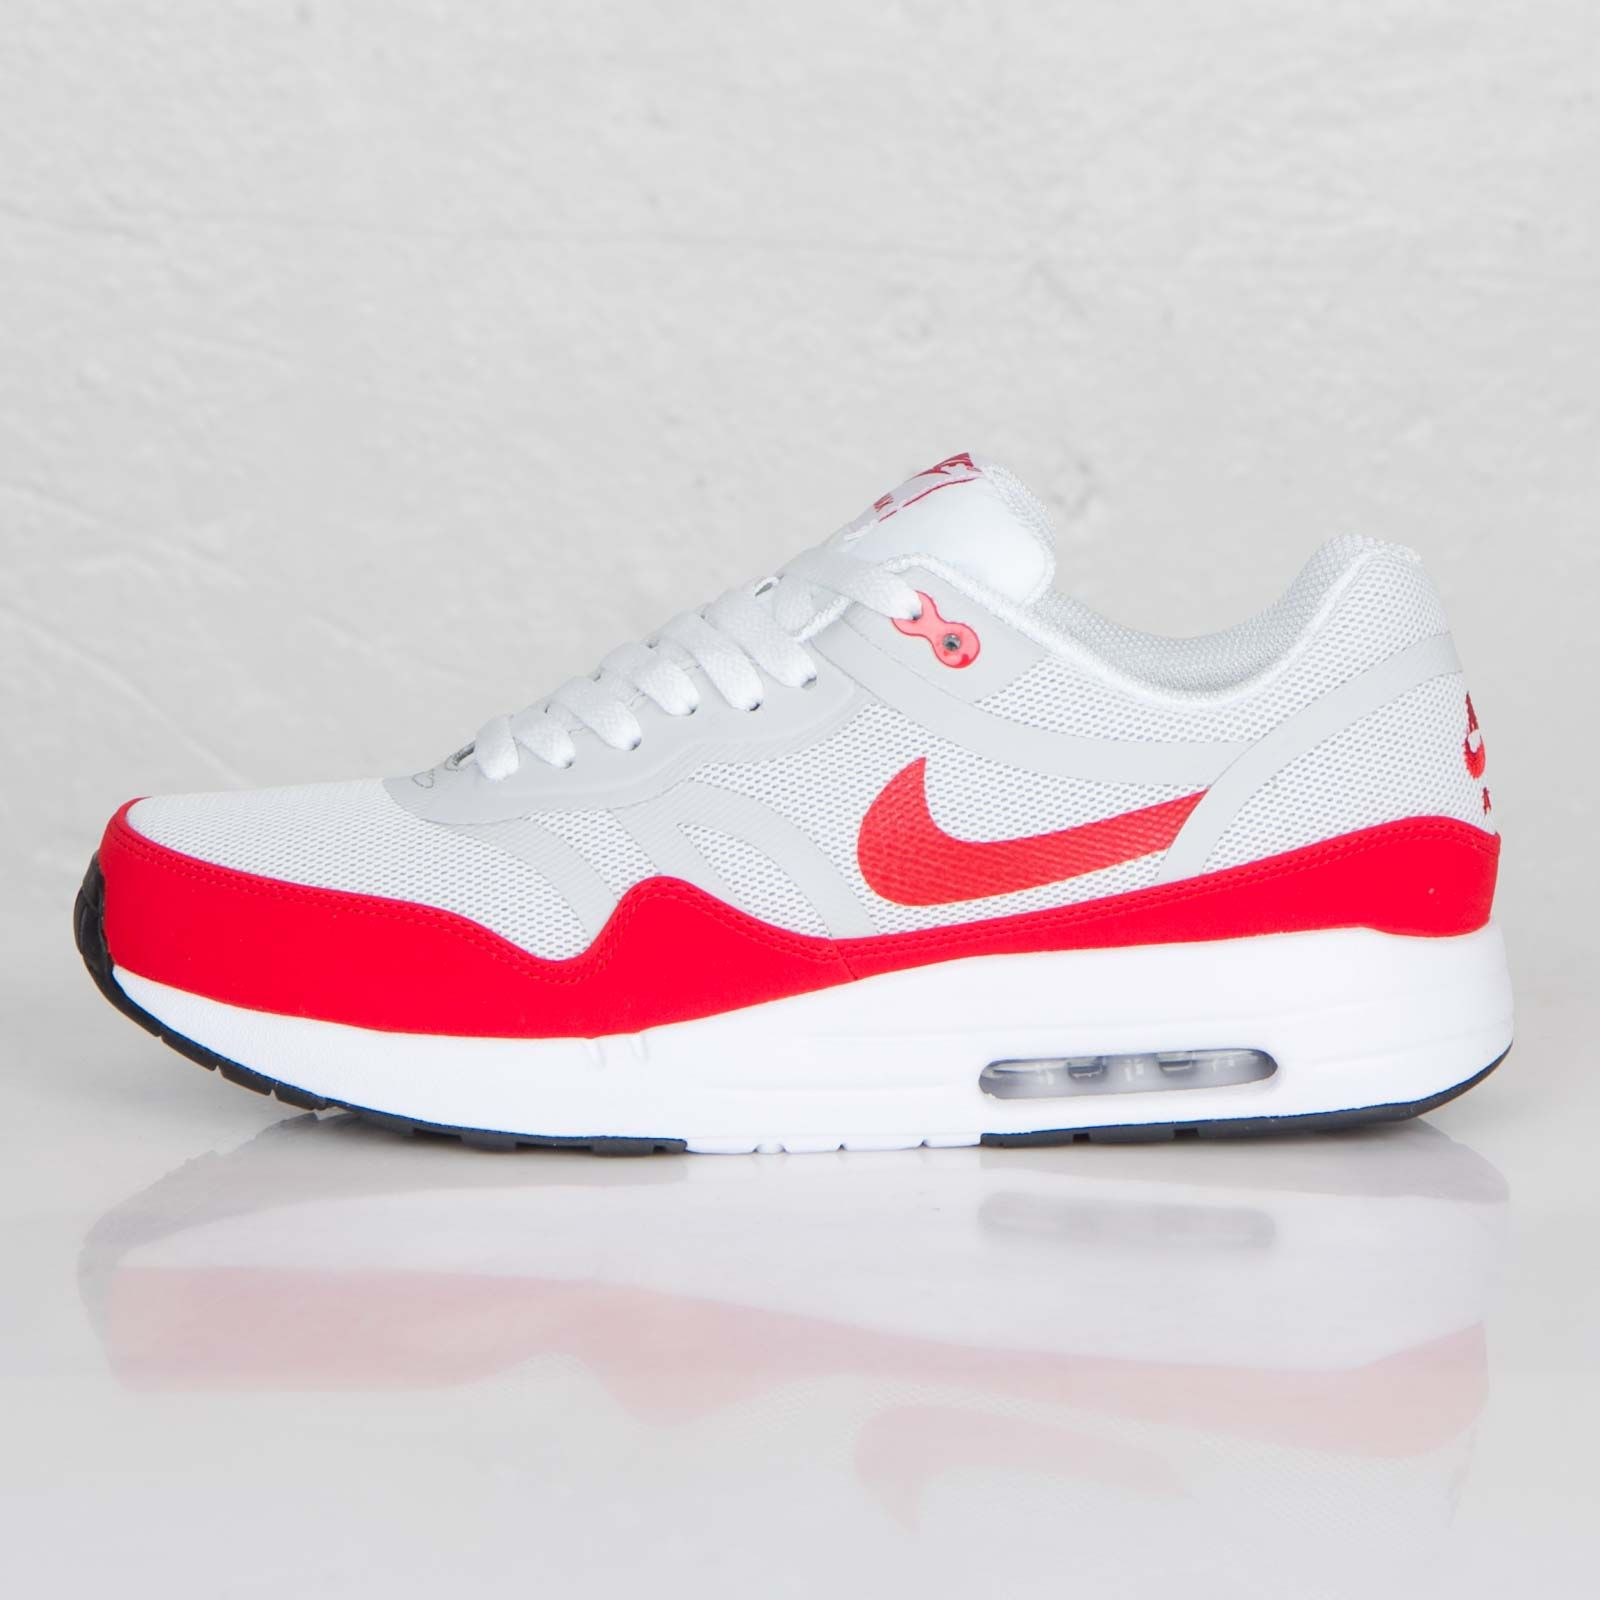 classic fit c75ce a6cb6 Nike - Air Max 1 Premium Tape QS - 624232-160 - Sneakersnstuff, sneakers   streetwear  online since 1999